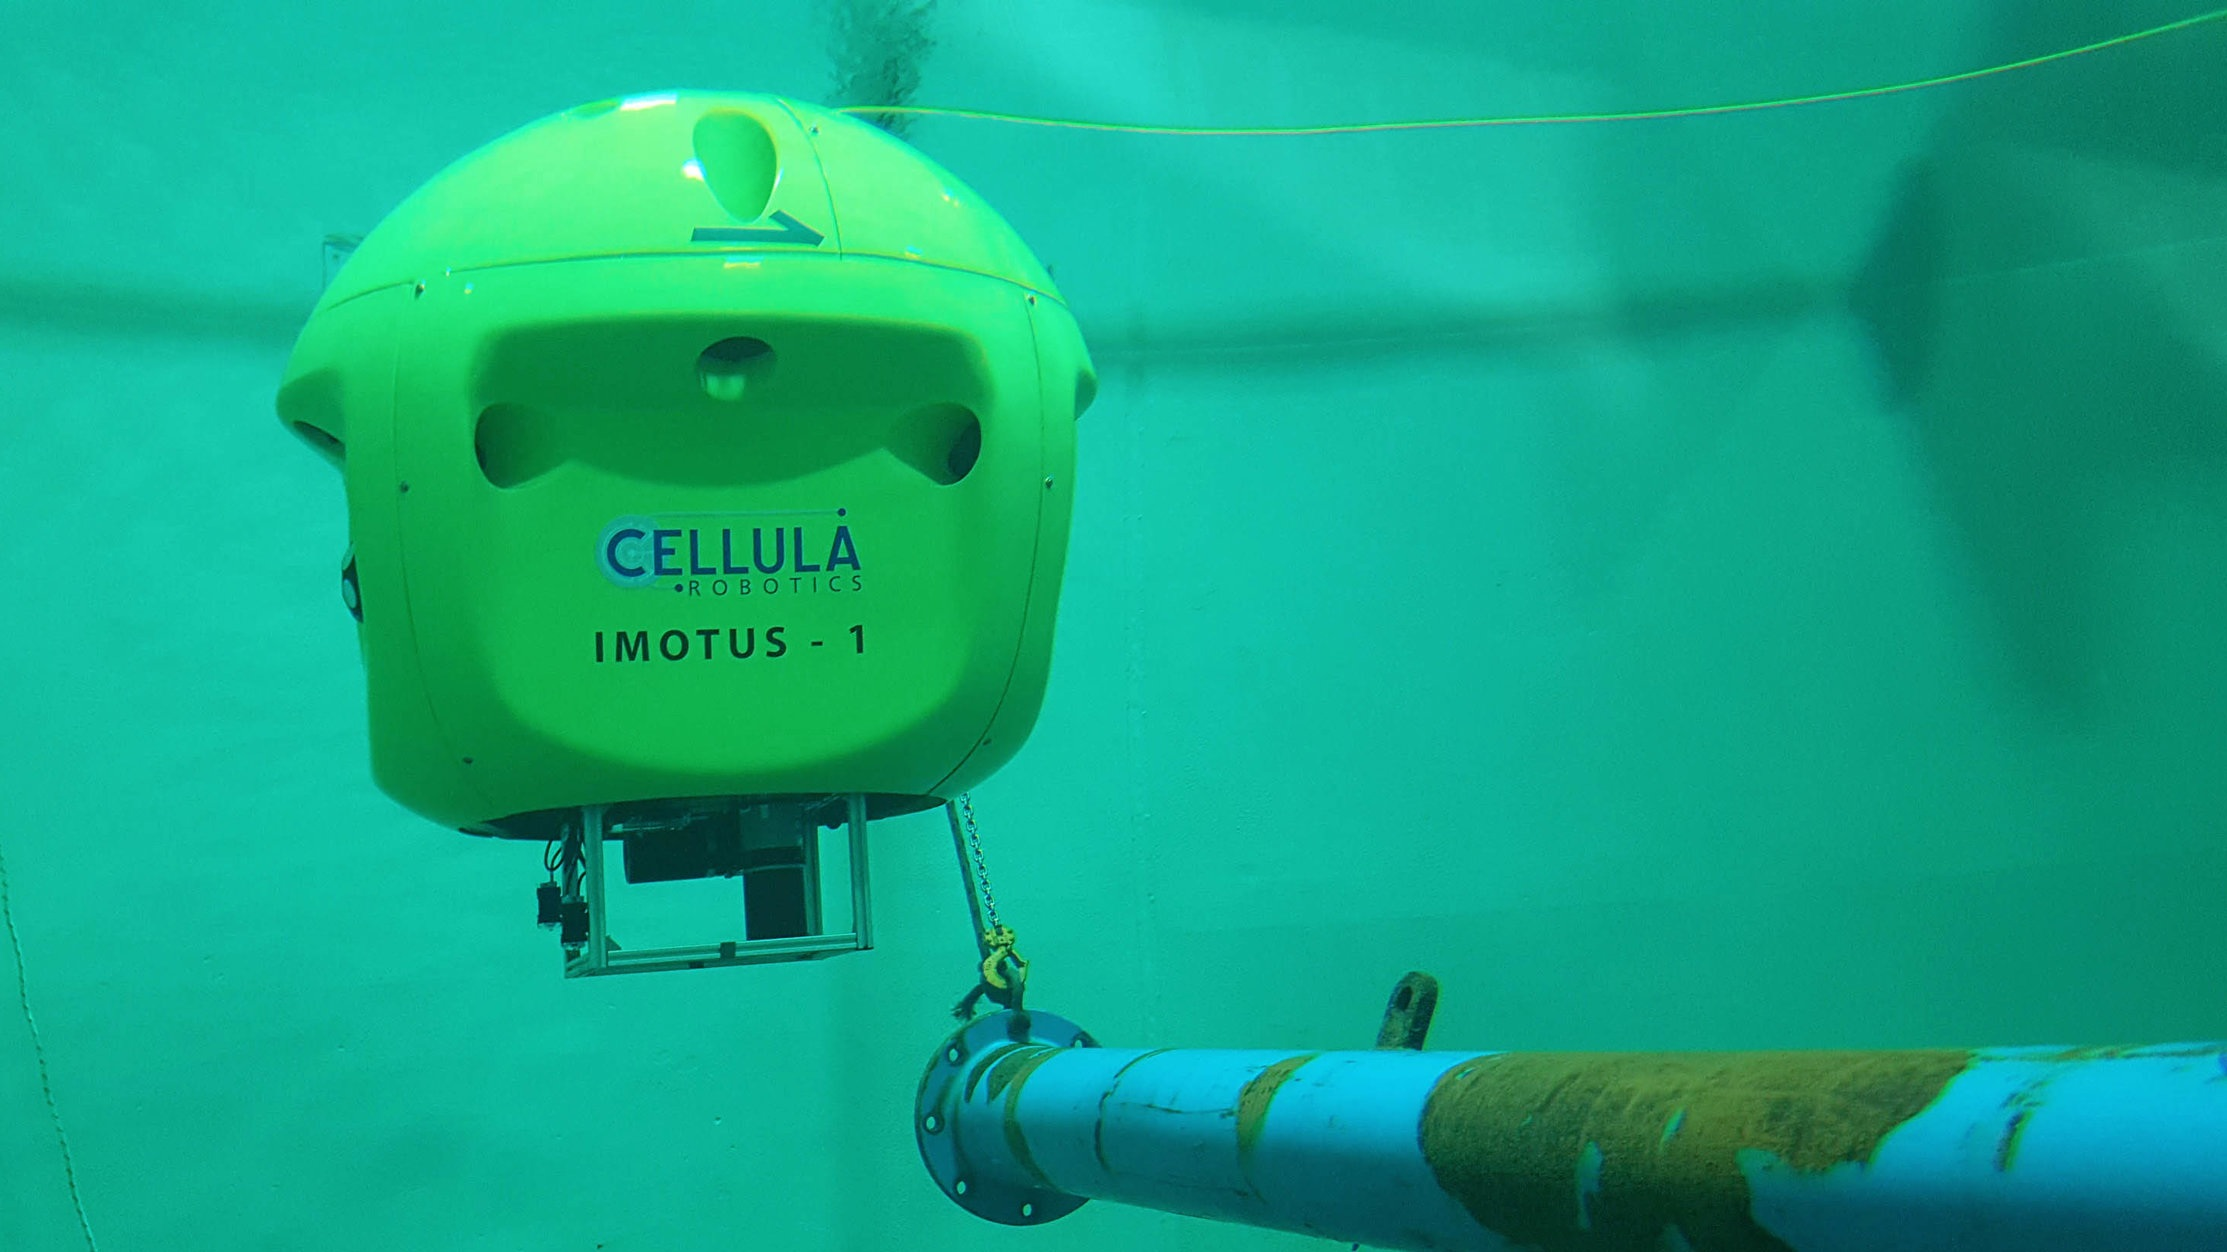 Snag Resistant Design - Imotus is designed to be snag resistant for use in complex enclosed spaces. If the optional fiber optic umbilical becomes snagged, Imotus can autonomously cut it and follow a safe route to the extraction point for recovery.